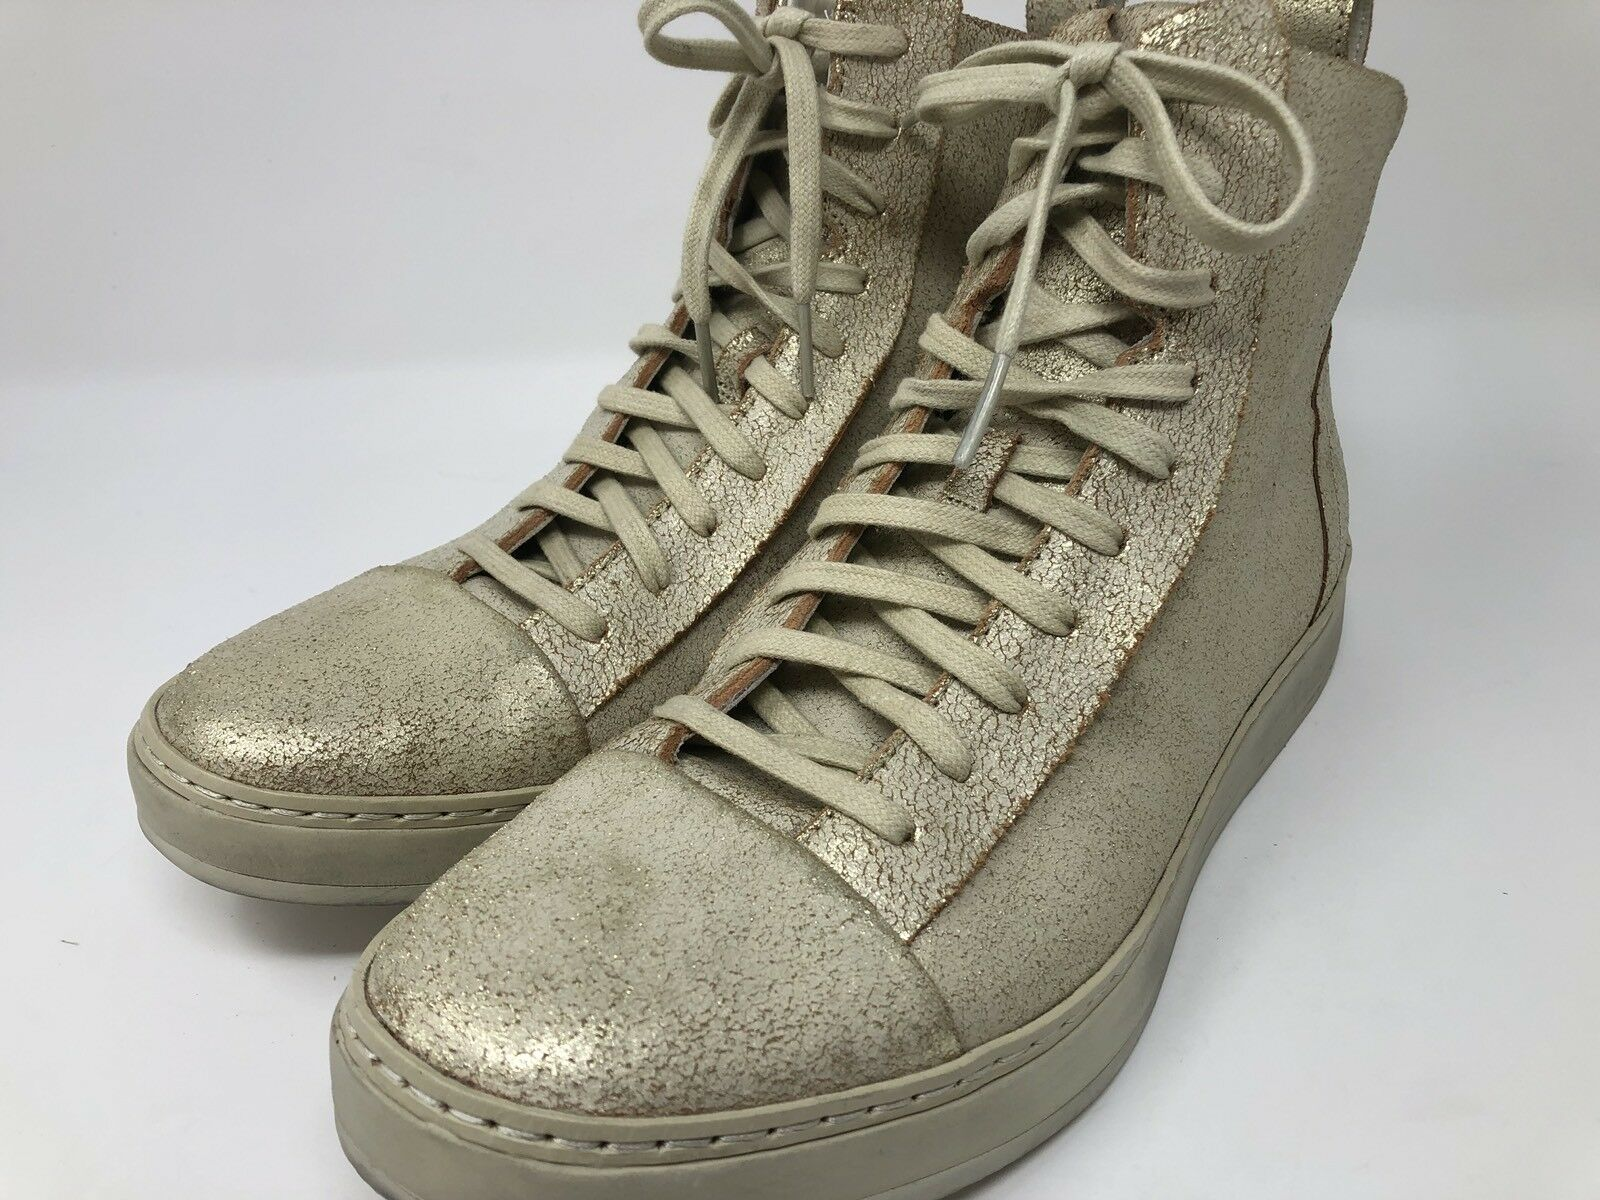 NEW JOHN VARVATOS 315 COLLECTION DEEK HIGH TOP SNEAKERS SZ US 8 M Sparkly gold